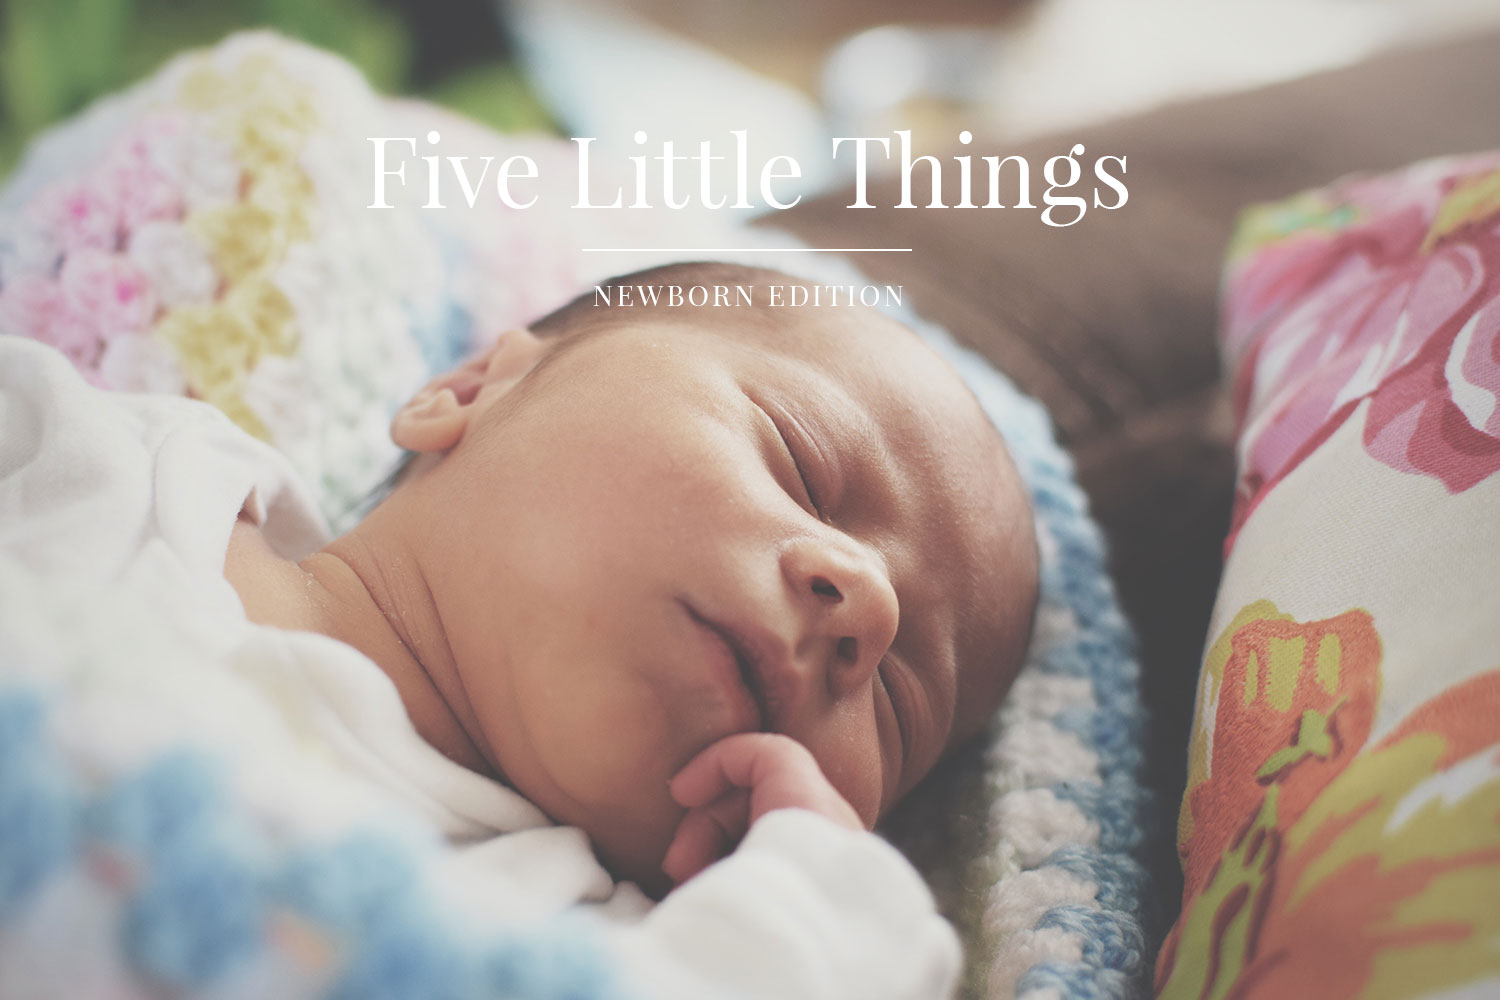 Five Little Things; A brain dump of all my thoughts - what's been happening since we had a newborn baby